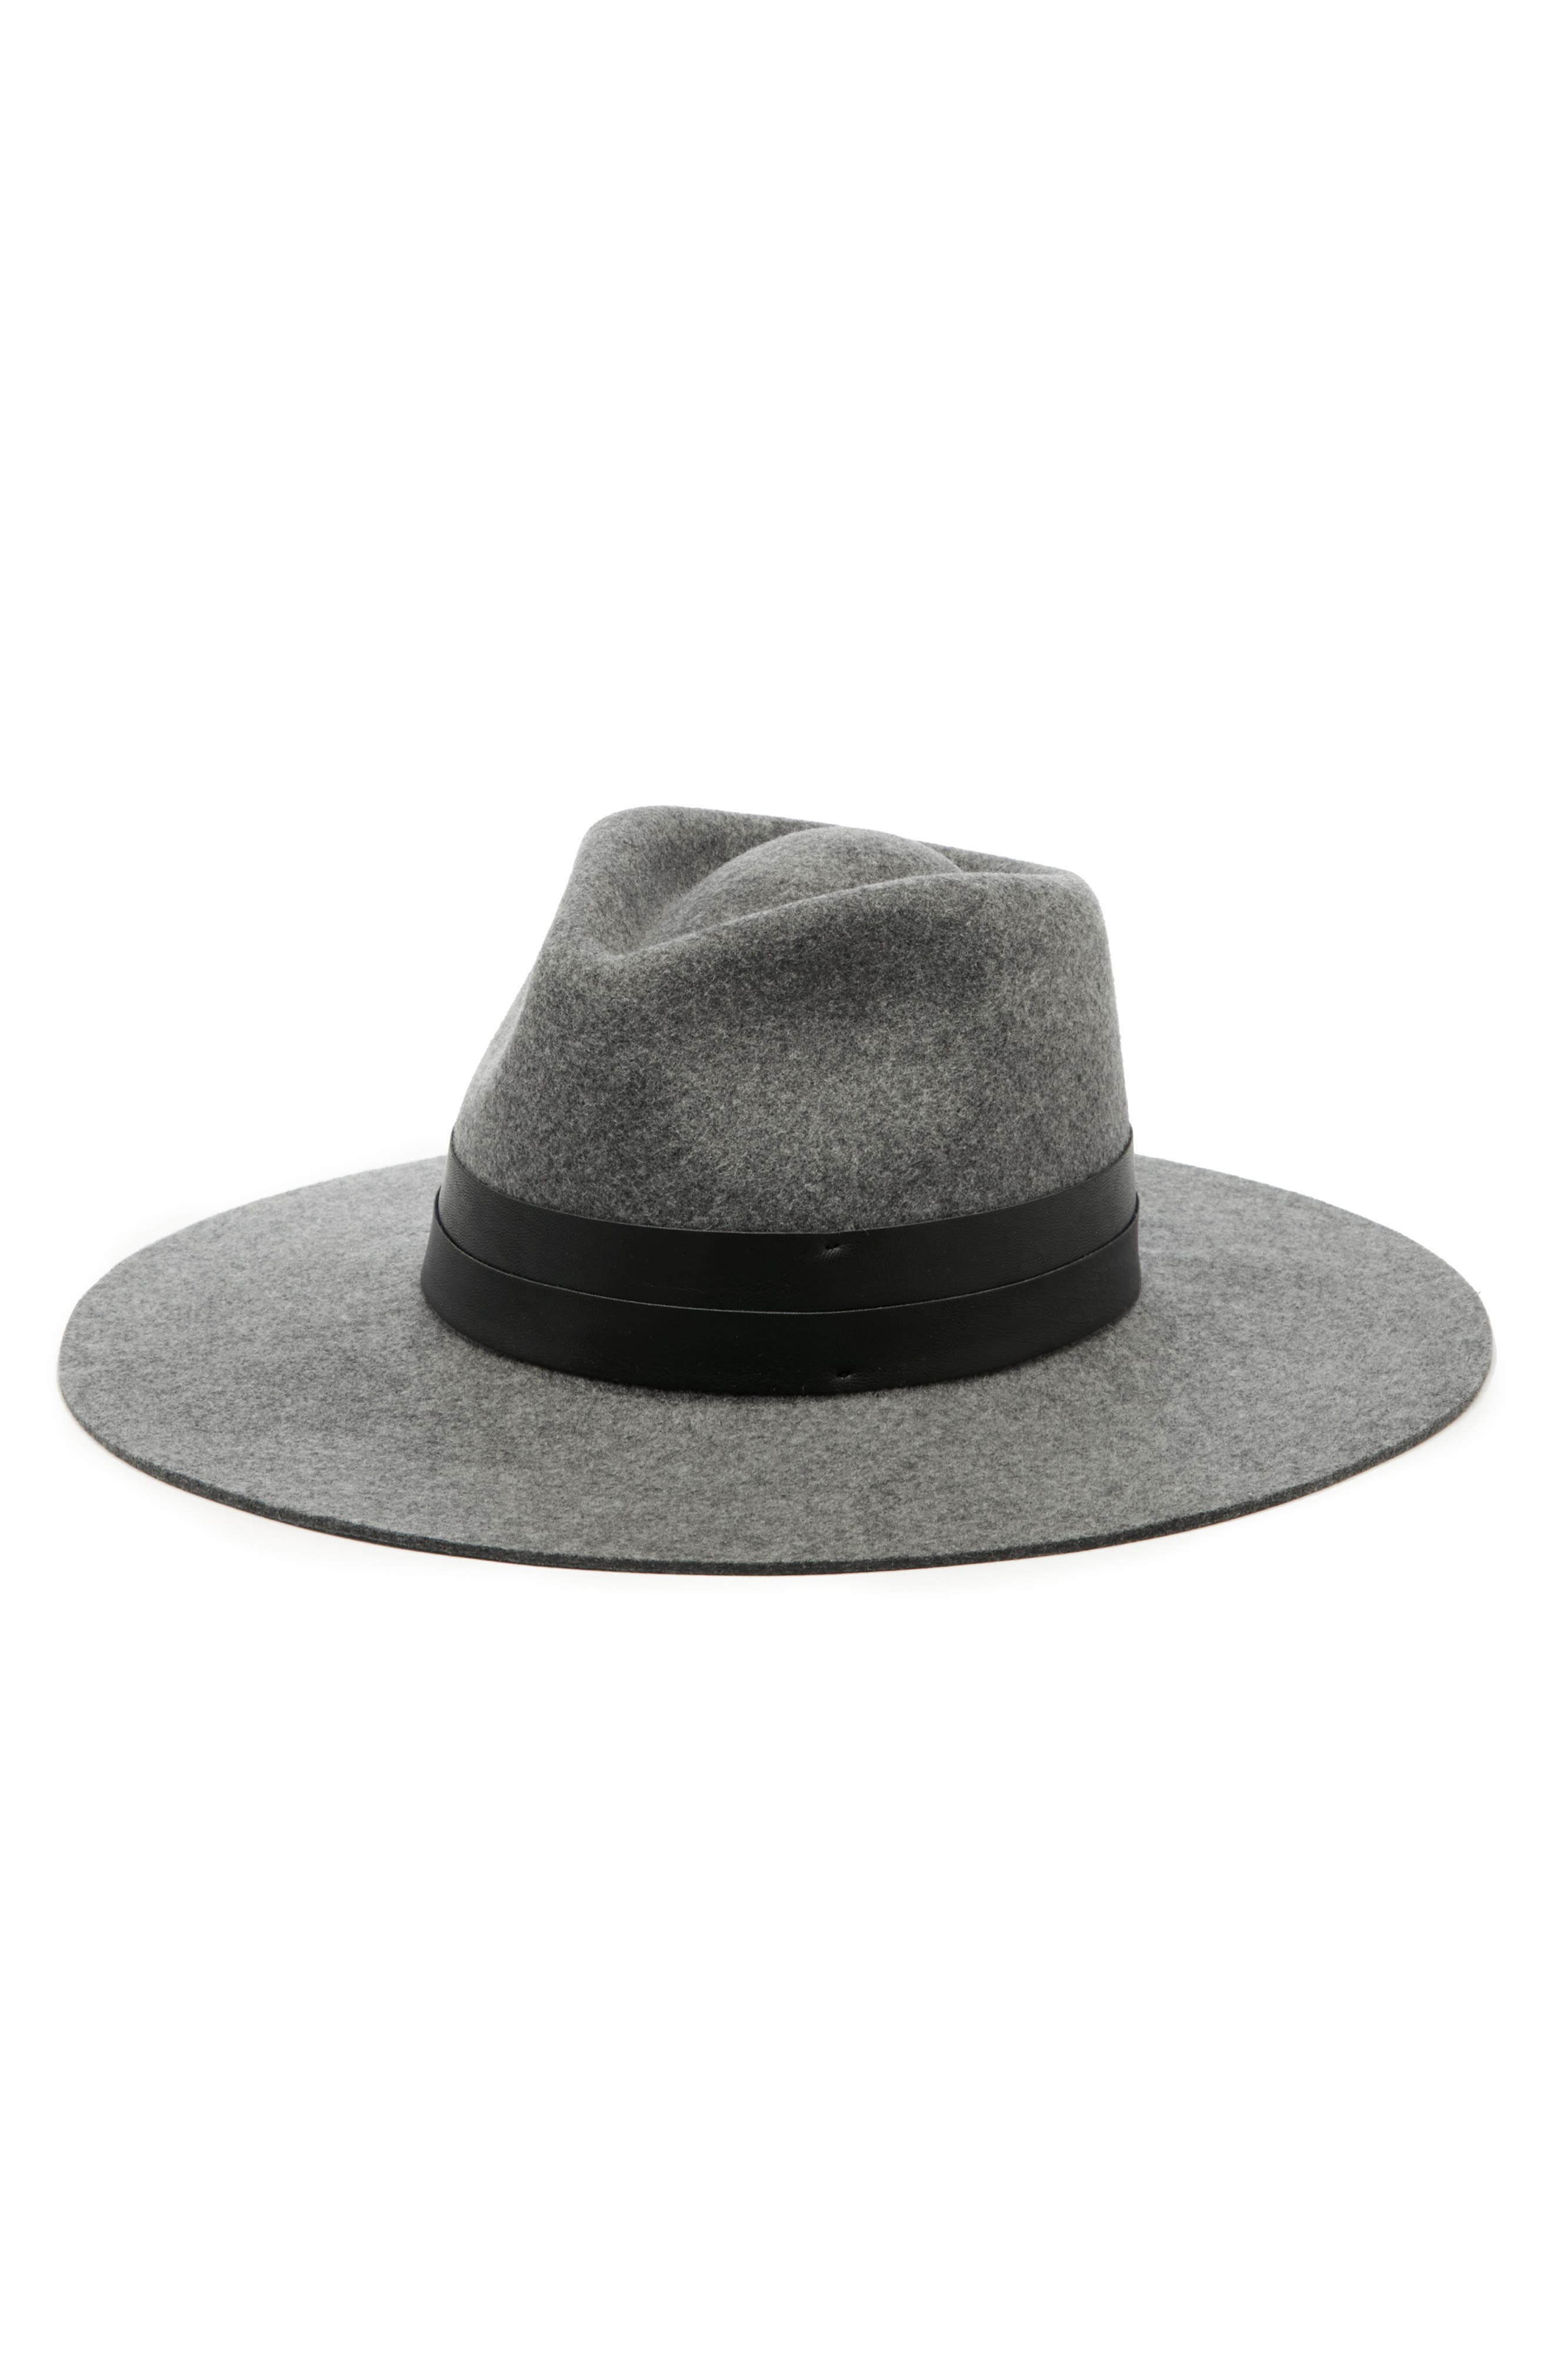 SOLE SOCIETY, Wide Brim Hat, Main thumbnail 1, color, 020